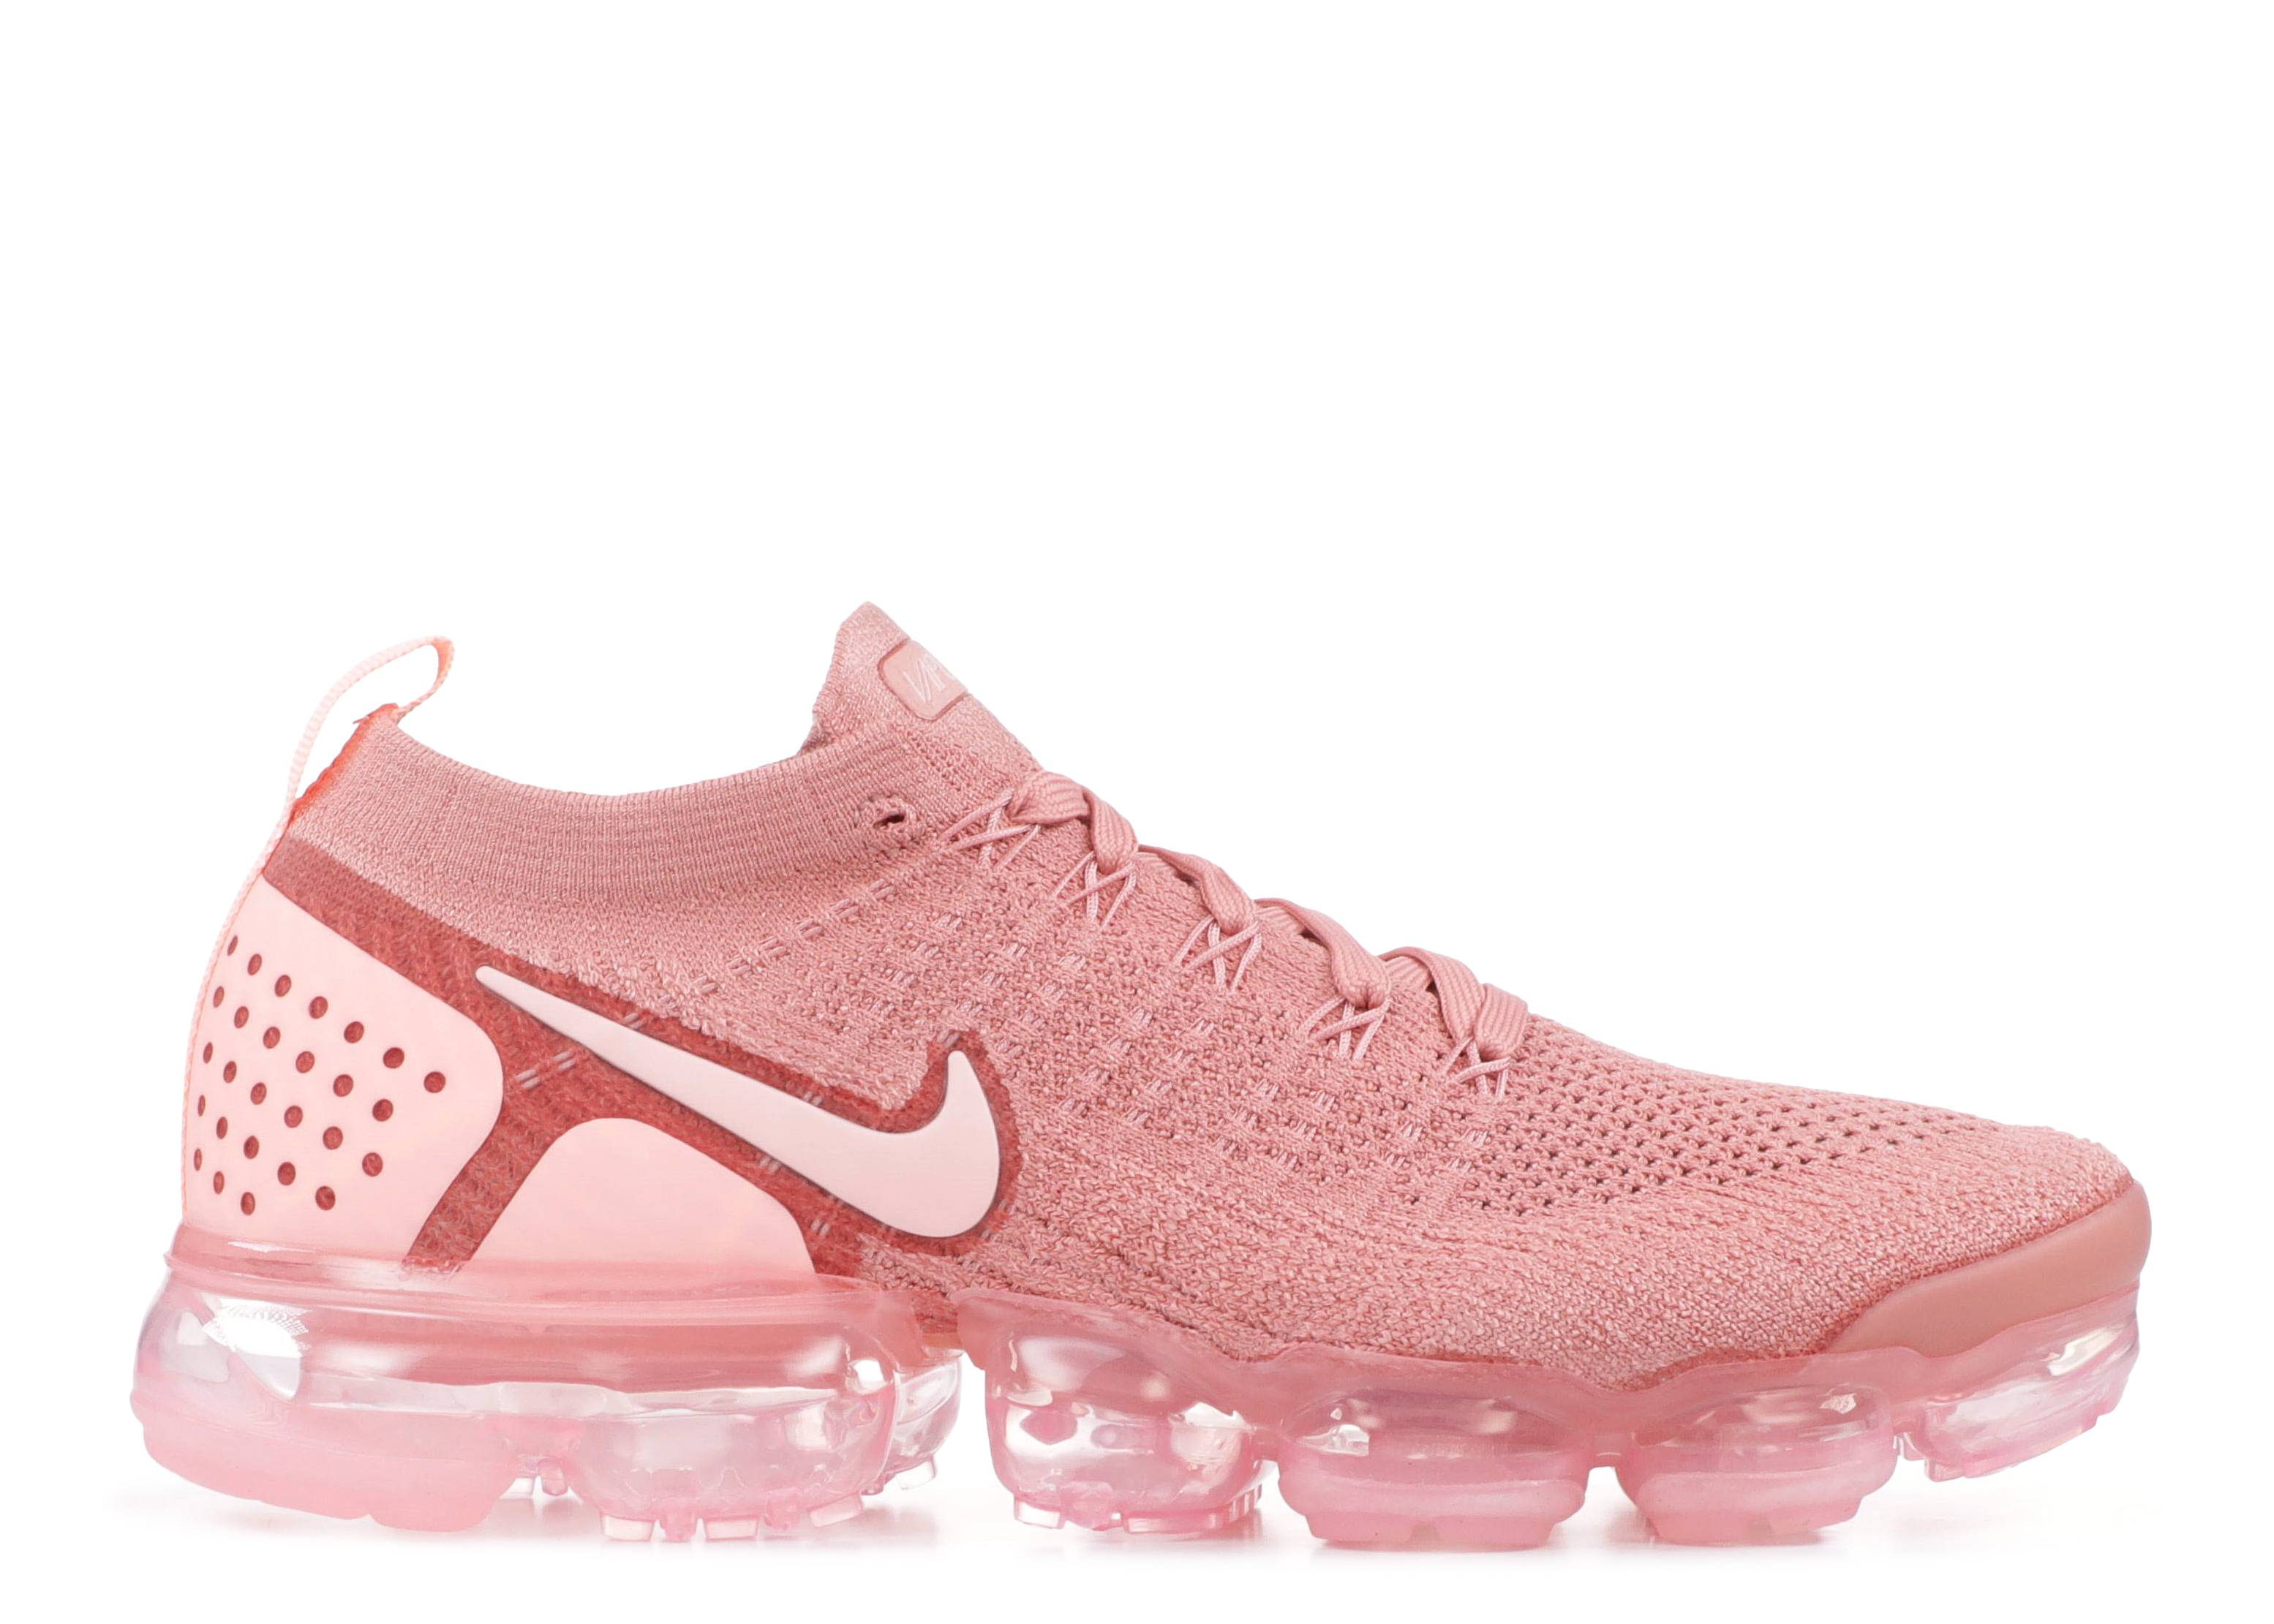 reputable site 9e60d 10909 w nike air vapormax flyknit 2